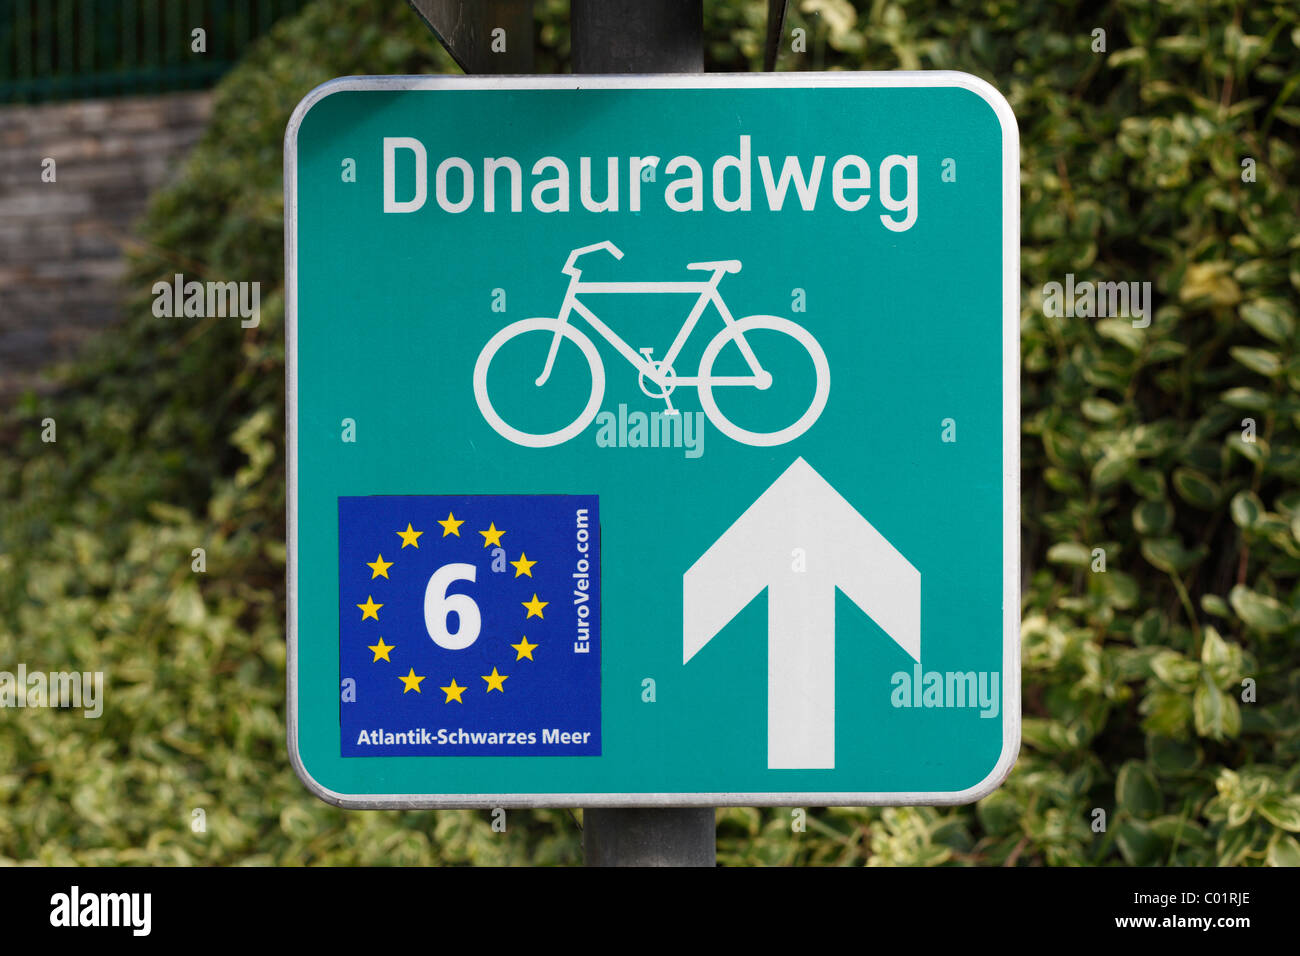 Bike lane sign 'Donauradweg', German for 'Danube bike trail', Wachau valley, Waldviertel region, - Stock Image